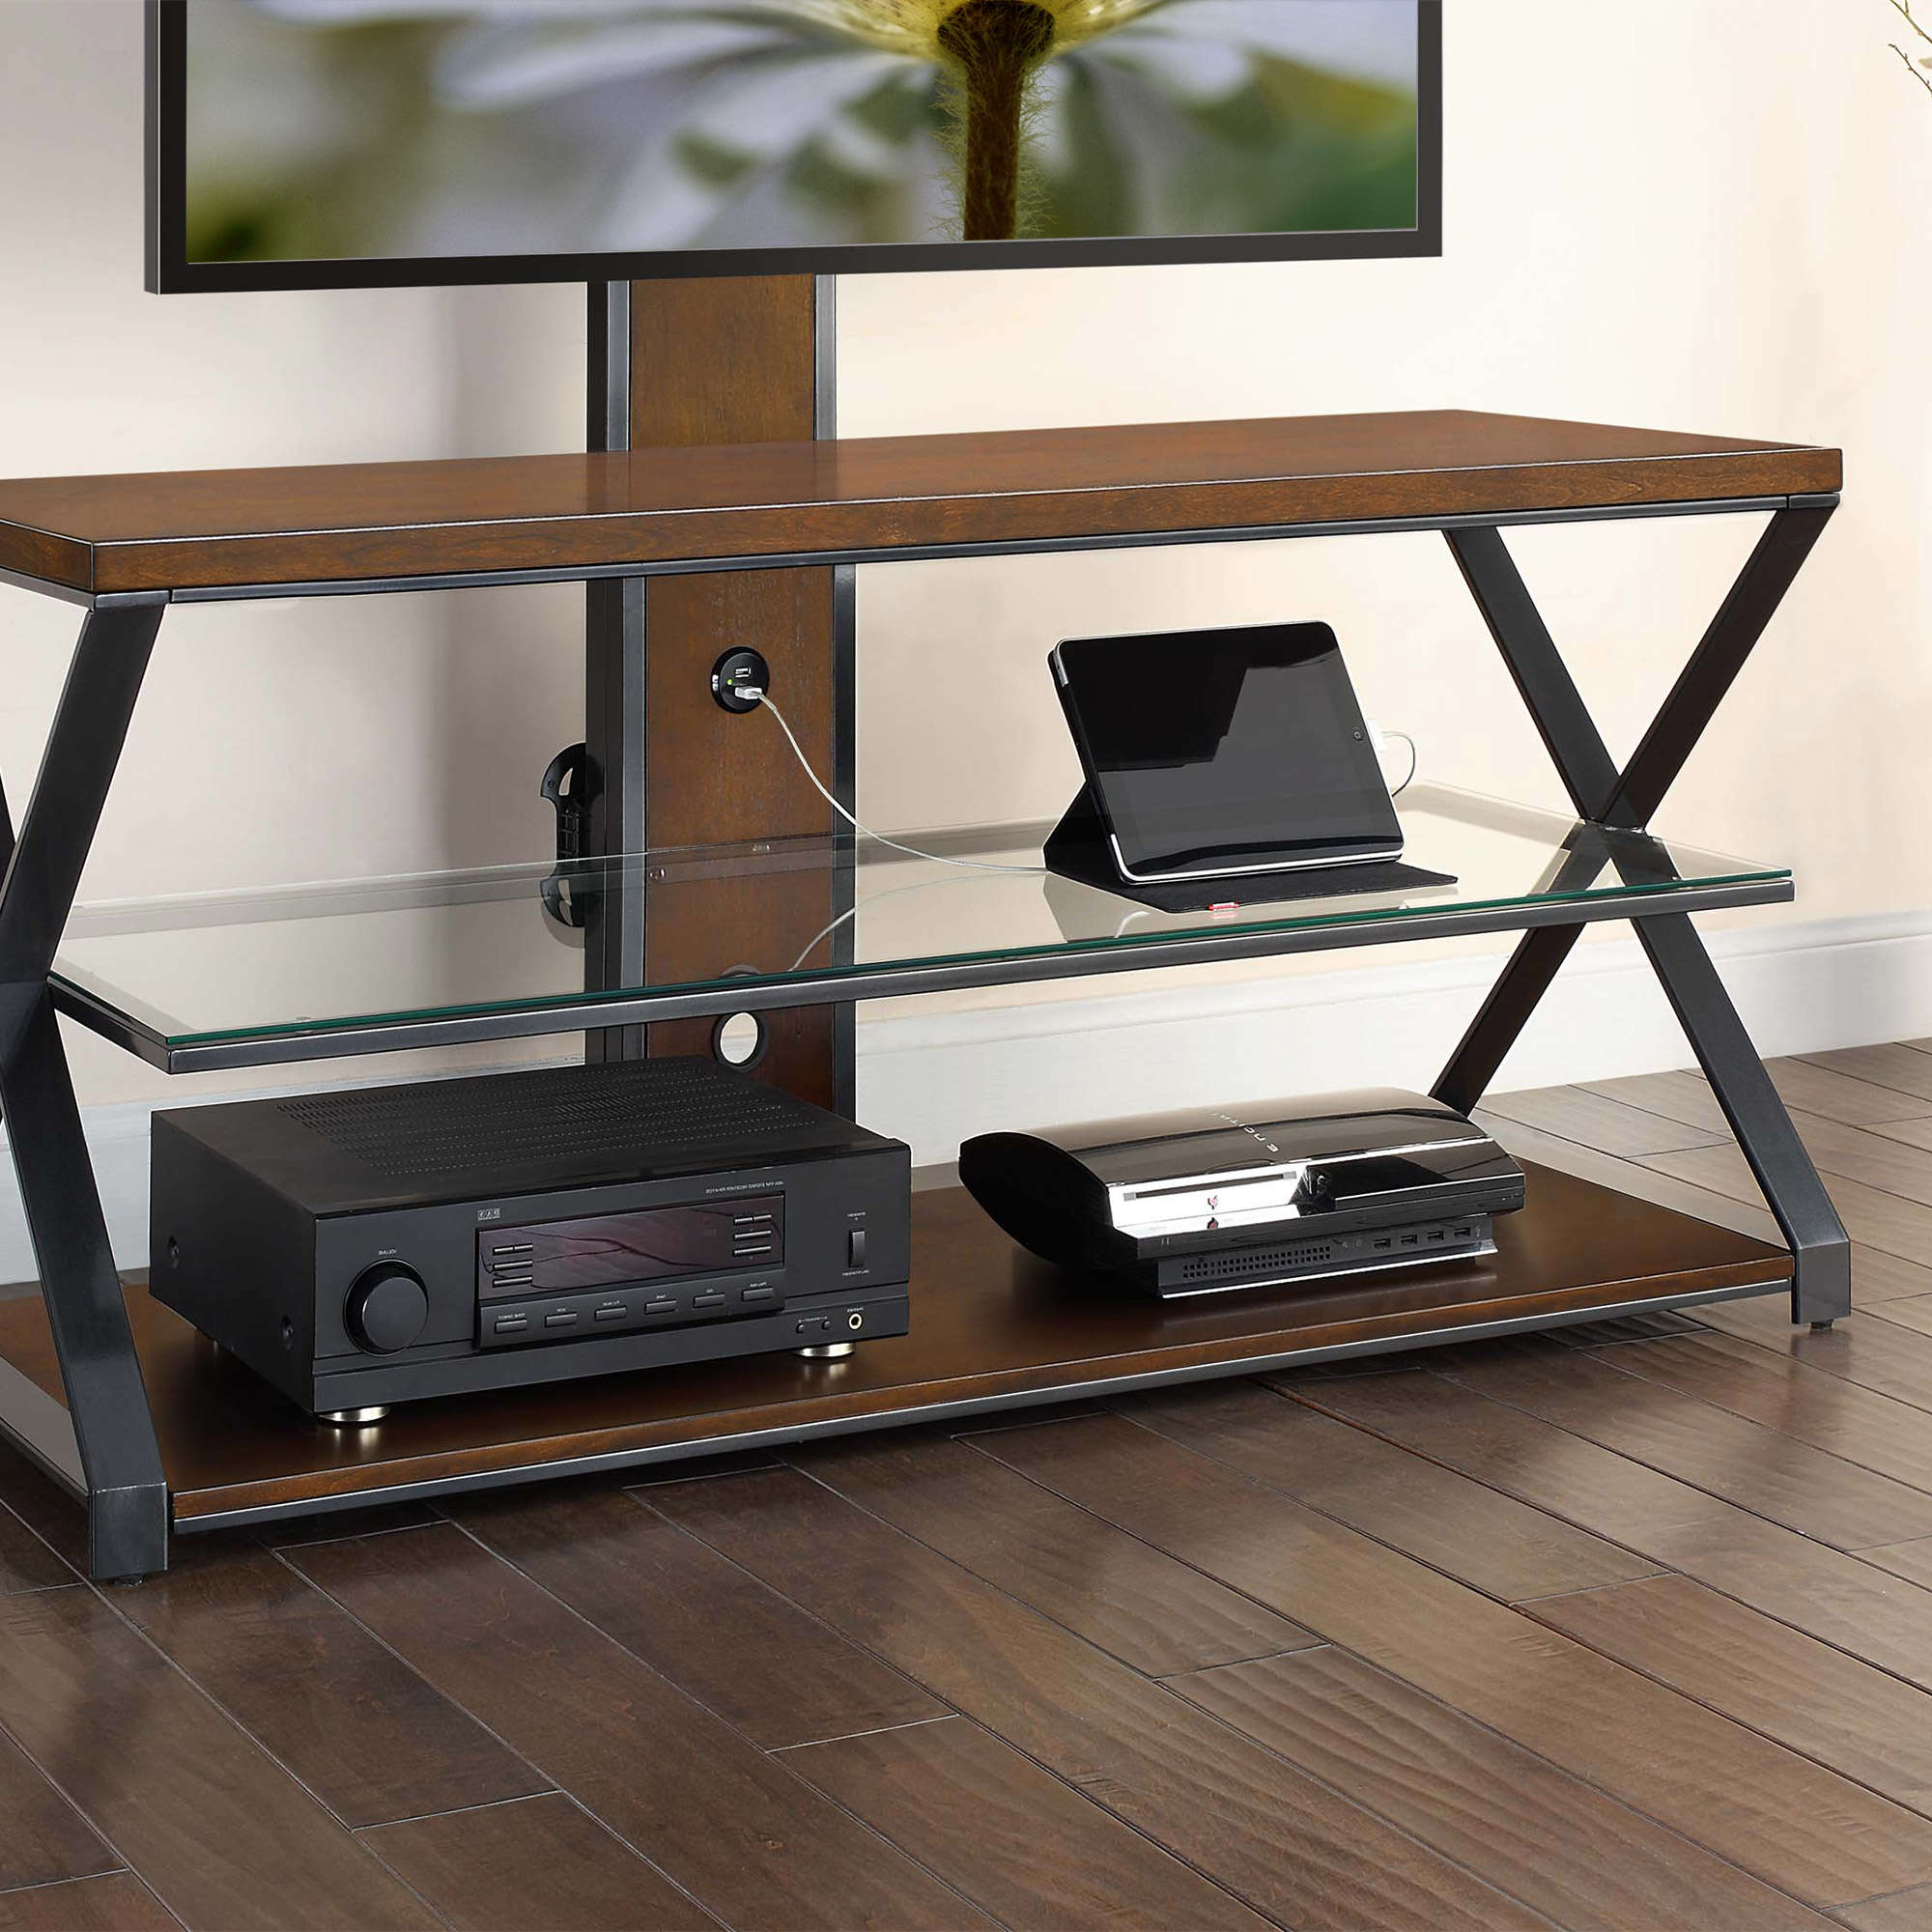 """Jaxon 3 In 1 Cognac Tv Stand For Tvs Up To 70"""" – Walmart Intended For Jaxon 76 Inch Plasma Console Tables (Gallery 5 of 20)"""